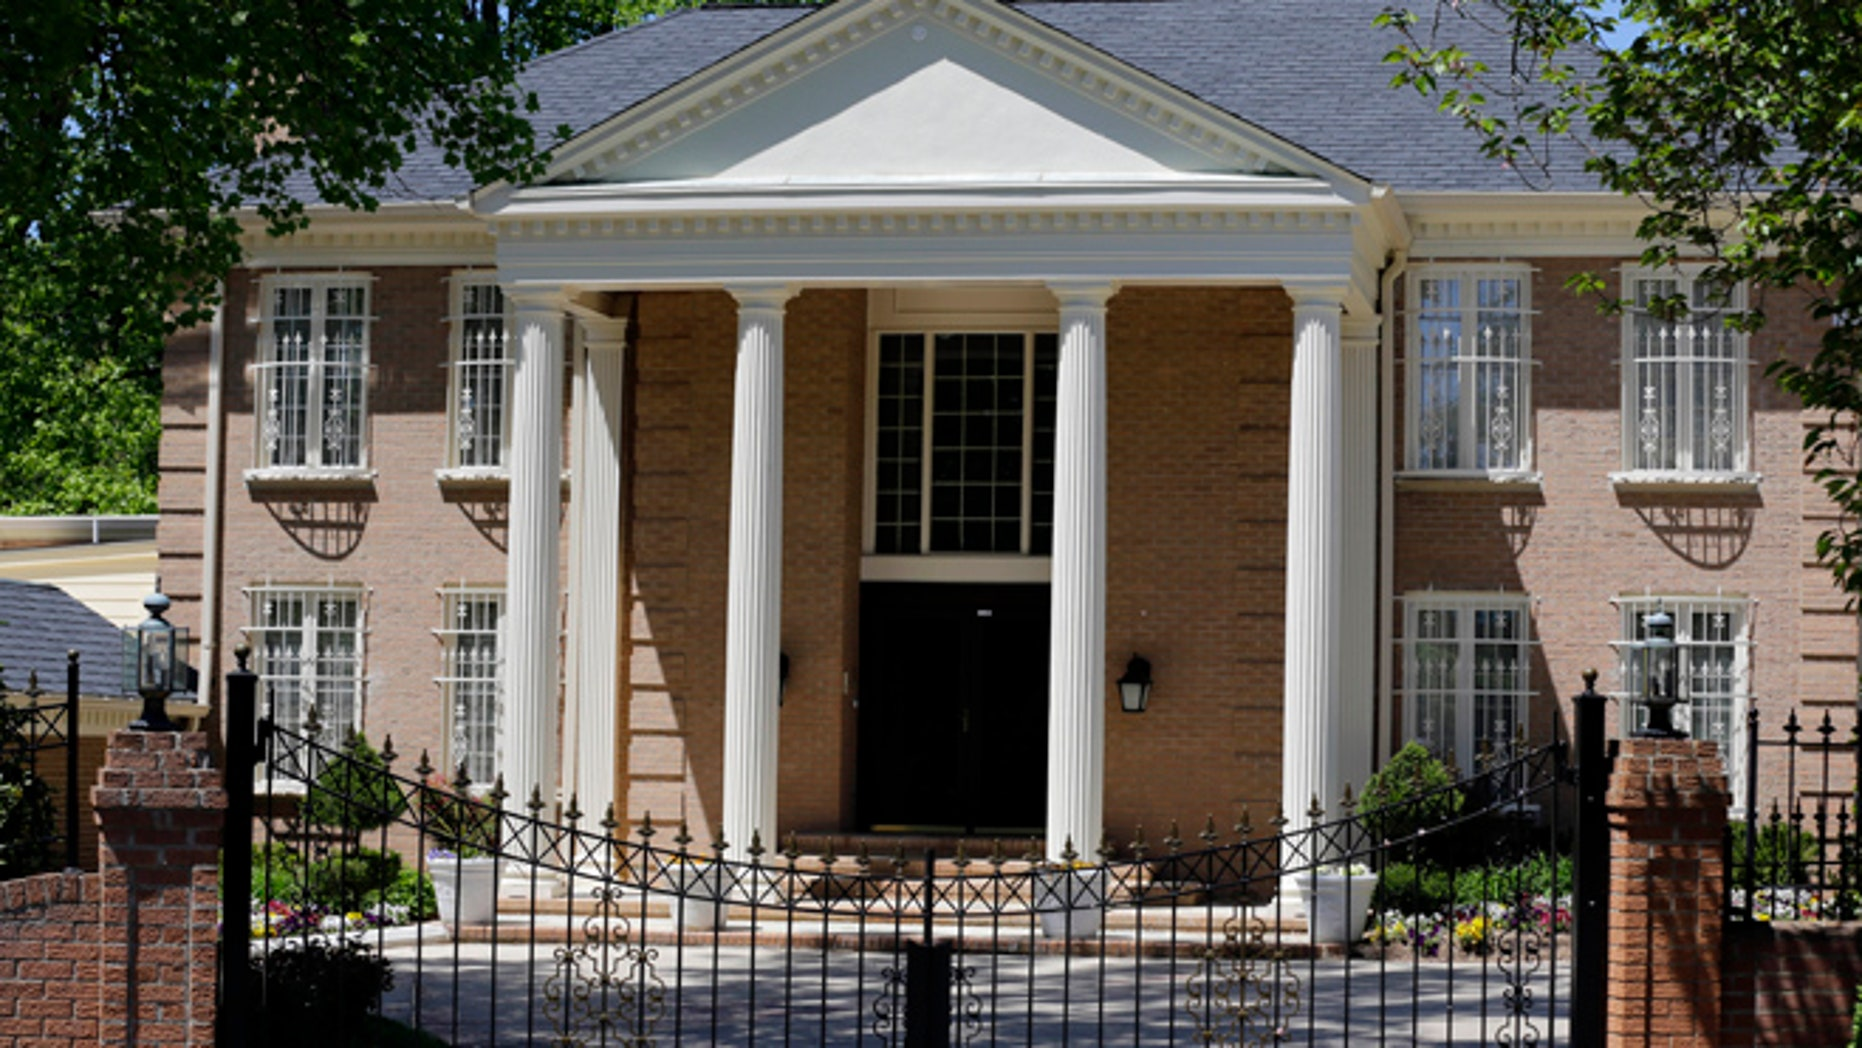 May 2, 2013: Shown here is the McLean, Va., home owned by the government of Saudi Arabia, which was investigated by U.S. Immigration and Customs (ICE) officials on a report of human trafficking.